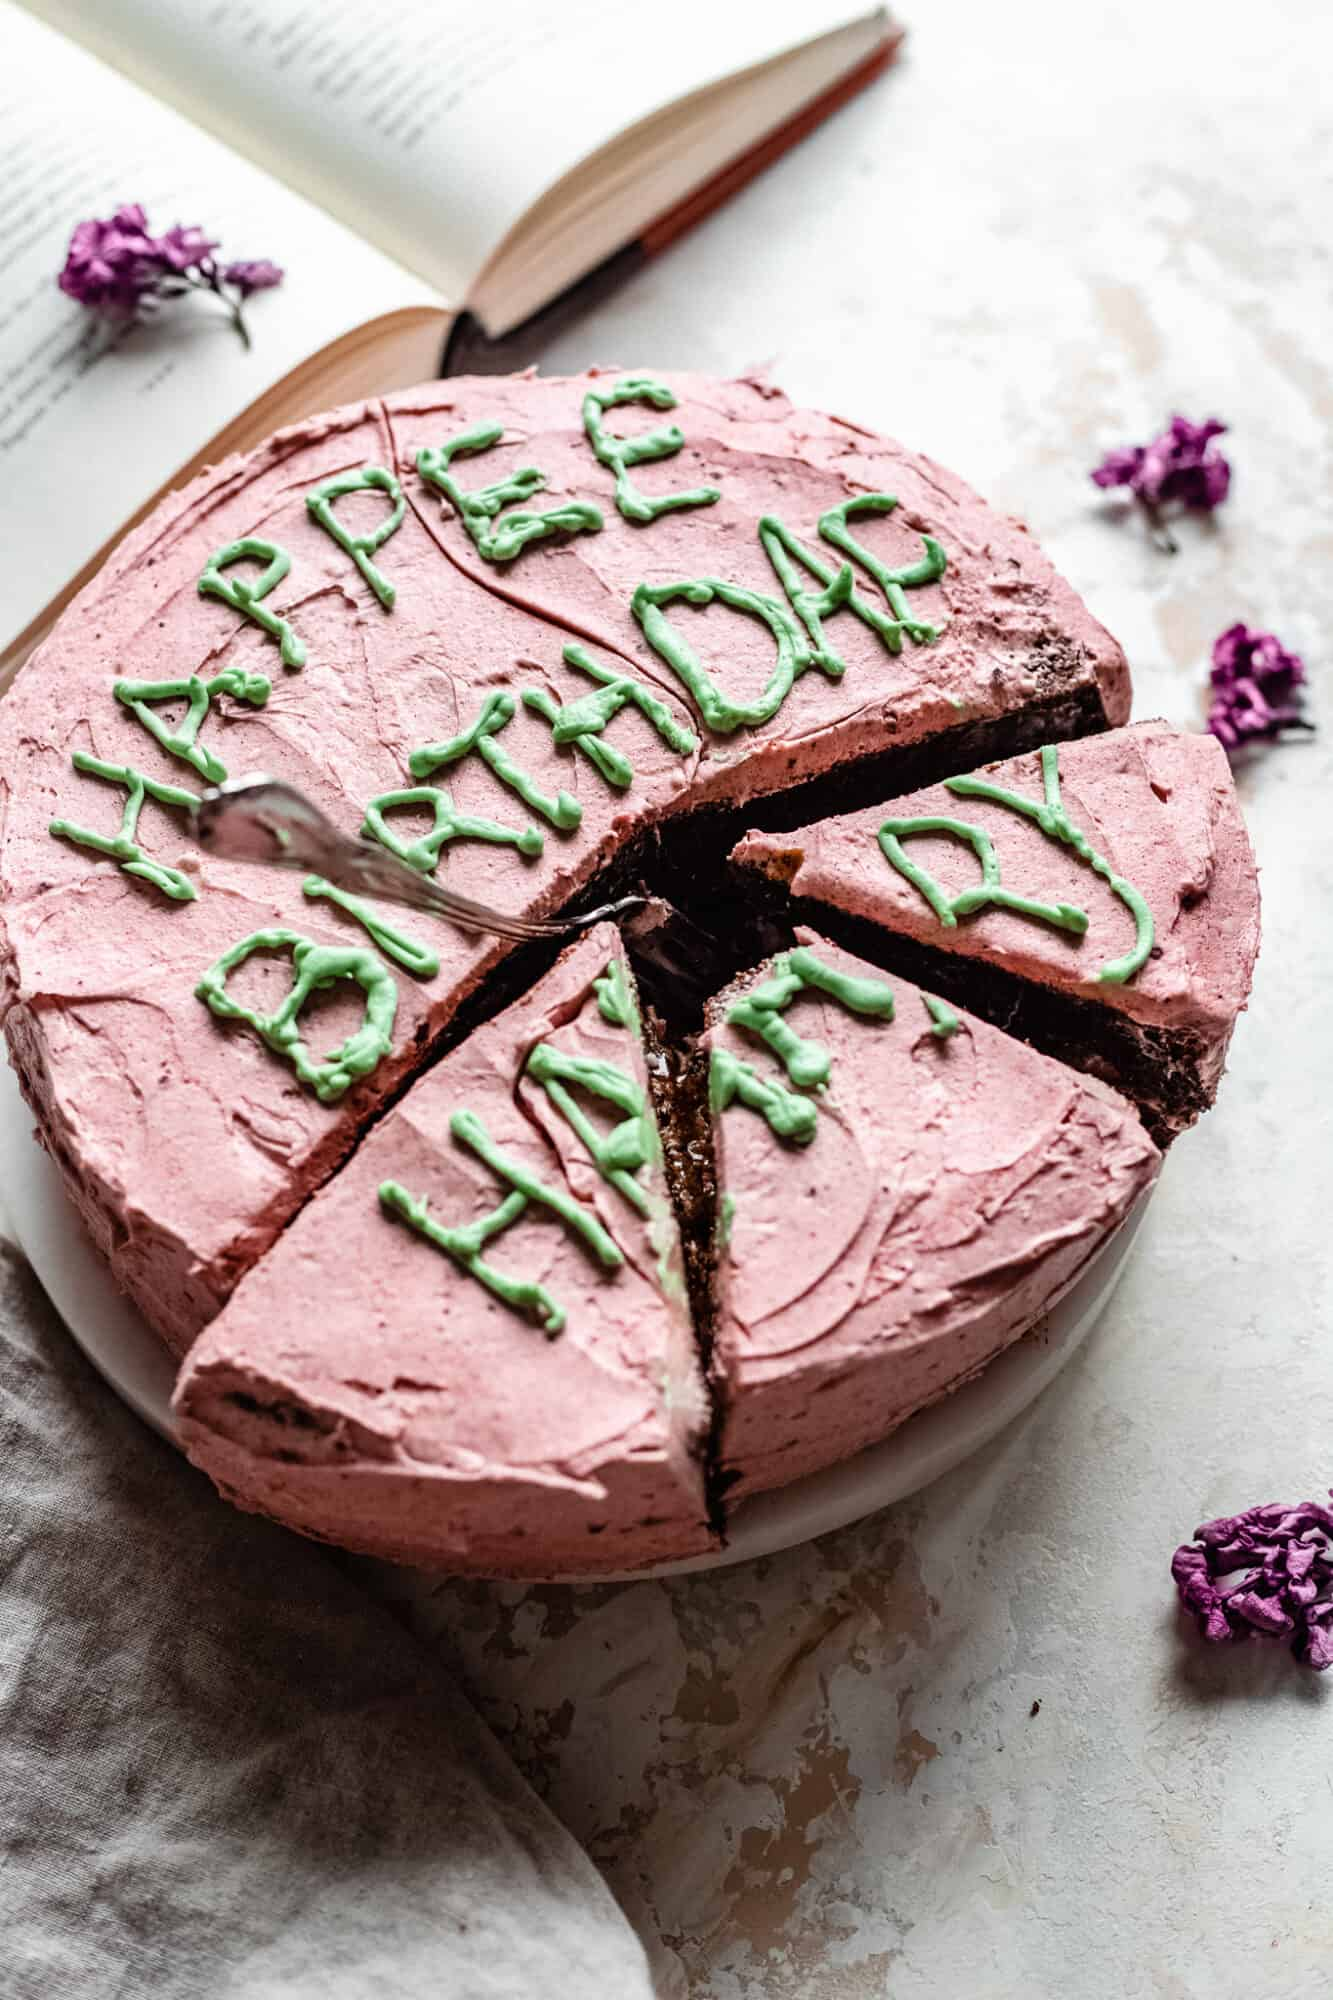 Vegan Harry Potter Birthday Cake The Banana Diaries Ive been hitting the links and i feel like ive learned a lot this past week. vegan harry potter birthday cake the